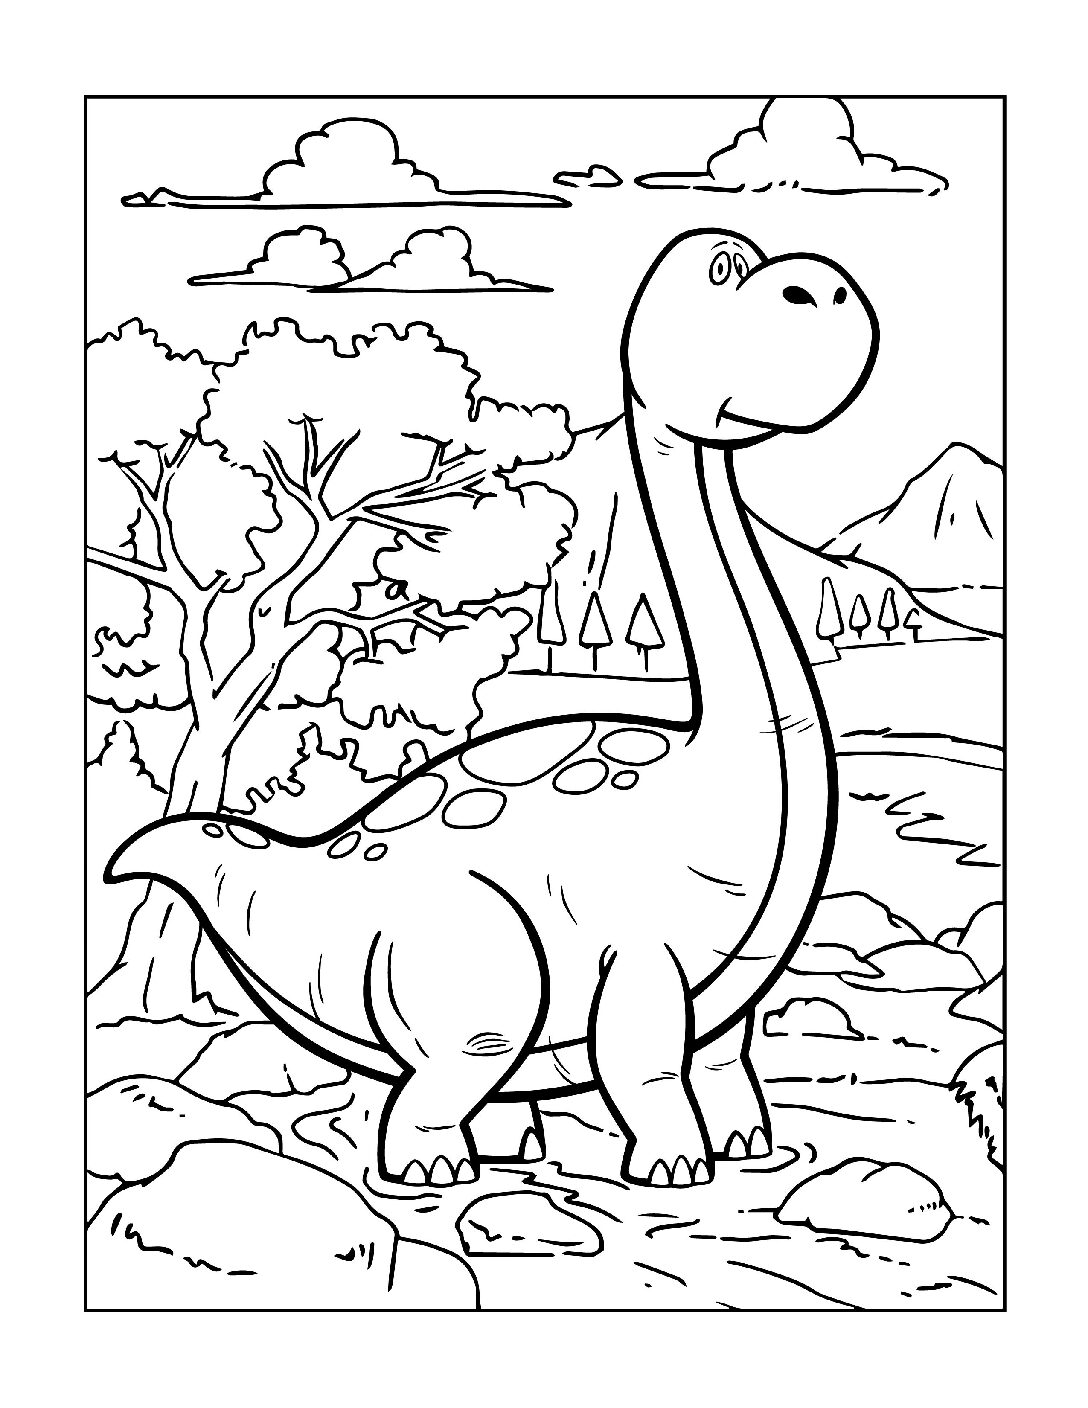 Coloring-Pages-Dinosaur-3-pdf Free Printable Dinasour Colouring Pages